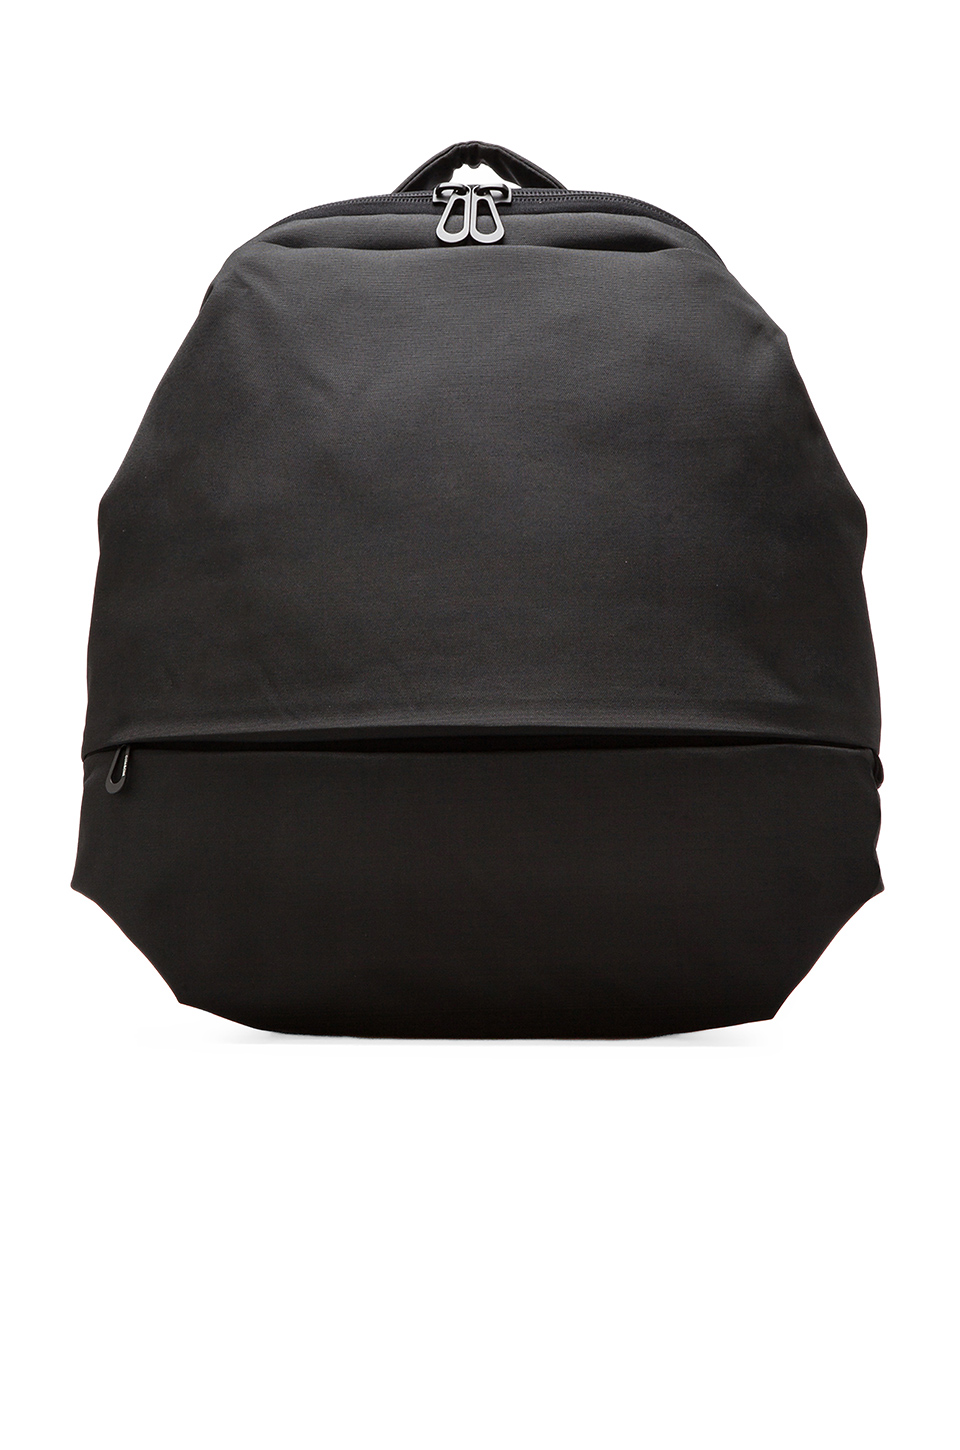 Cote & Ciel Meuse Backpack in Black